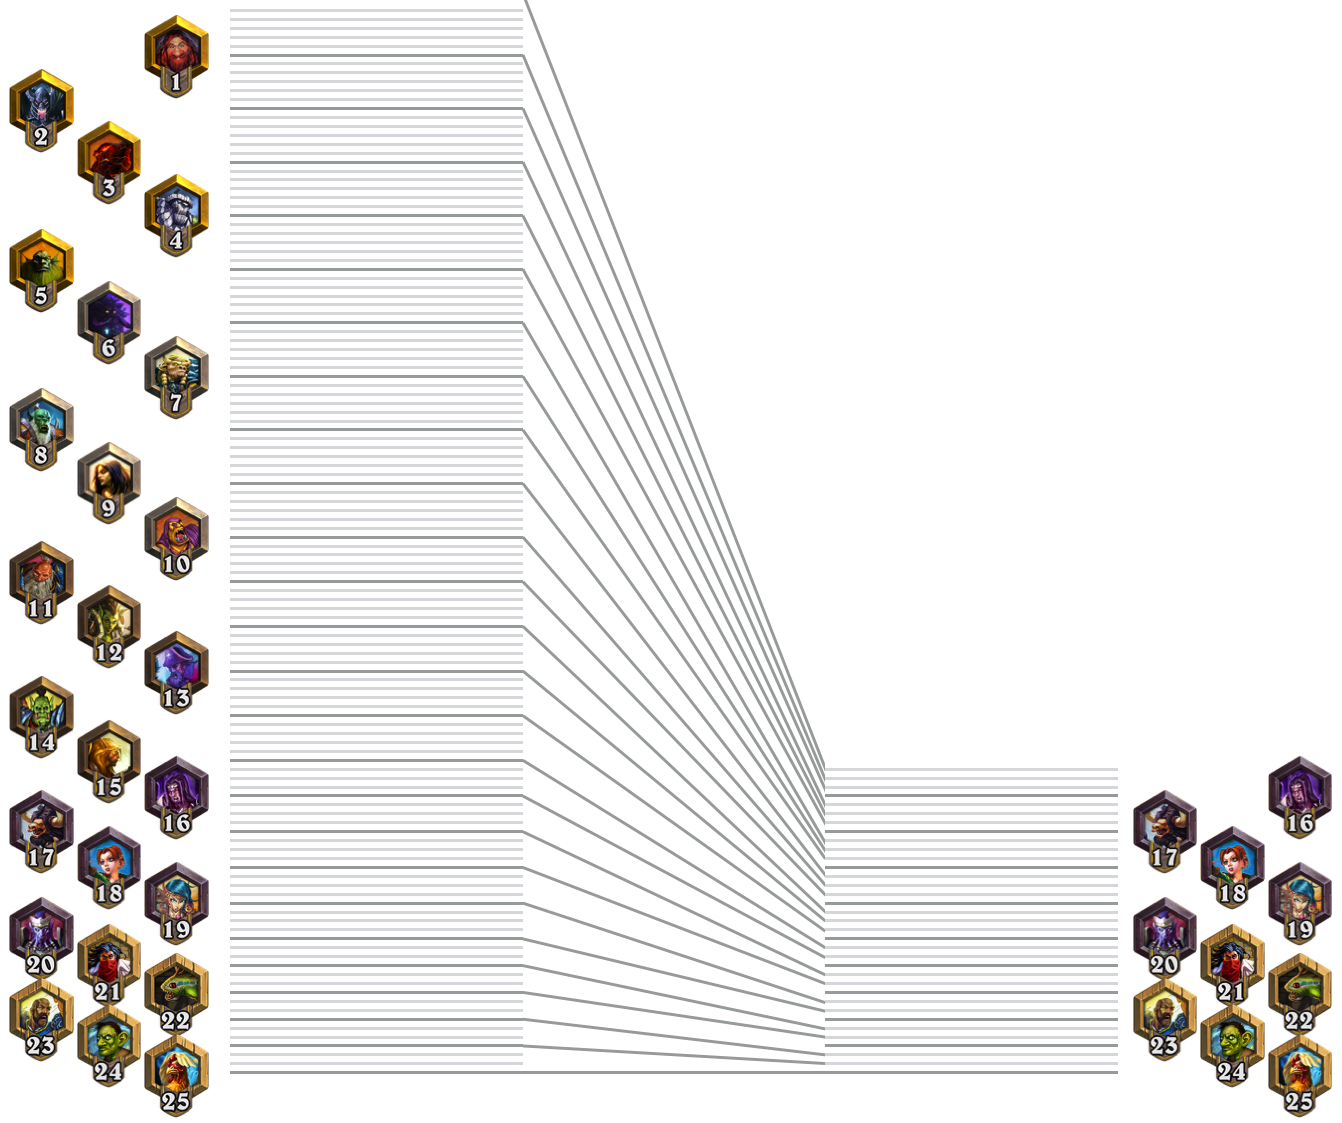 i visualized the data from every single game of hearthstone i